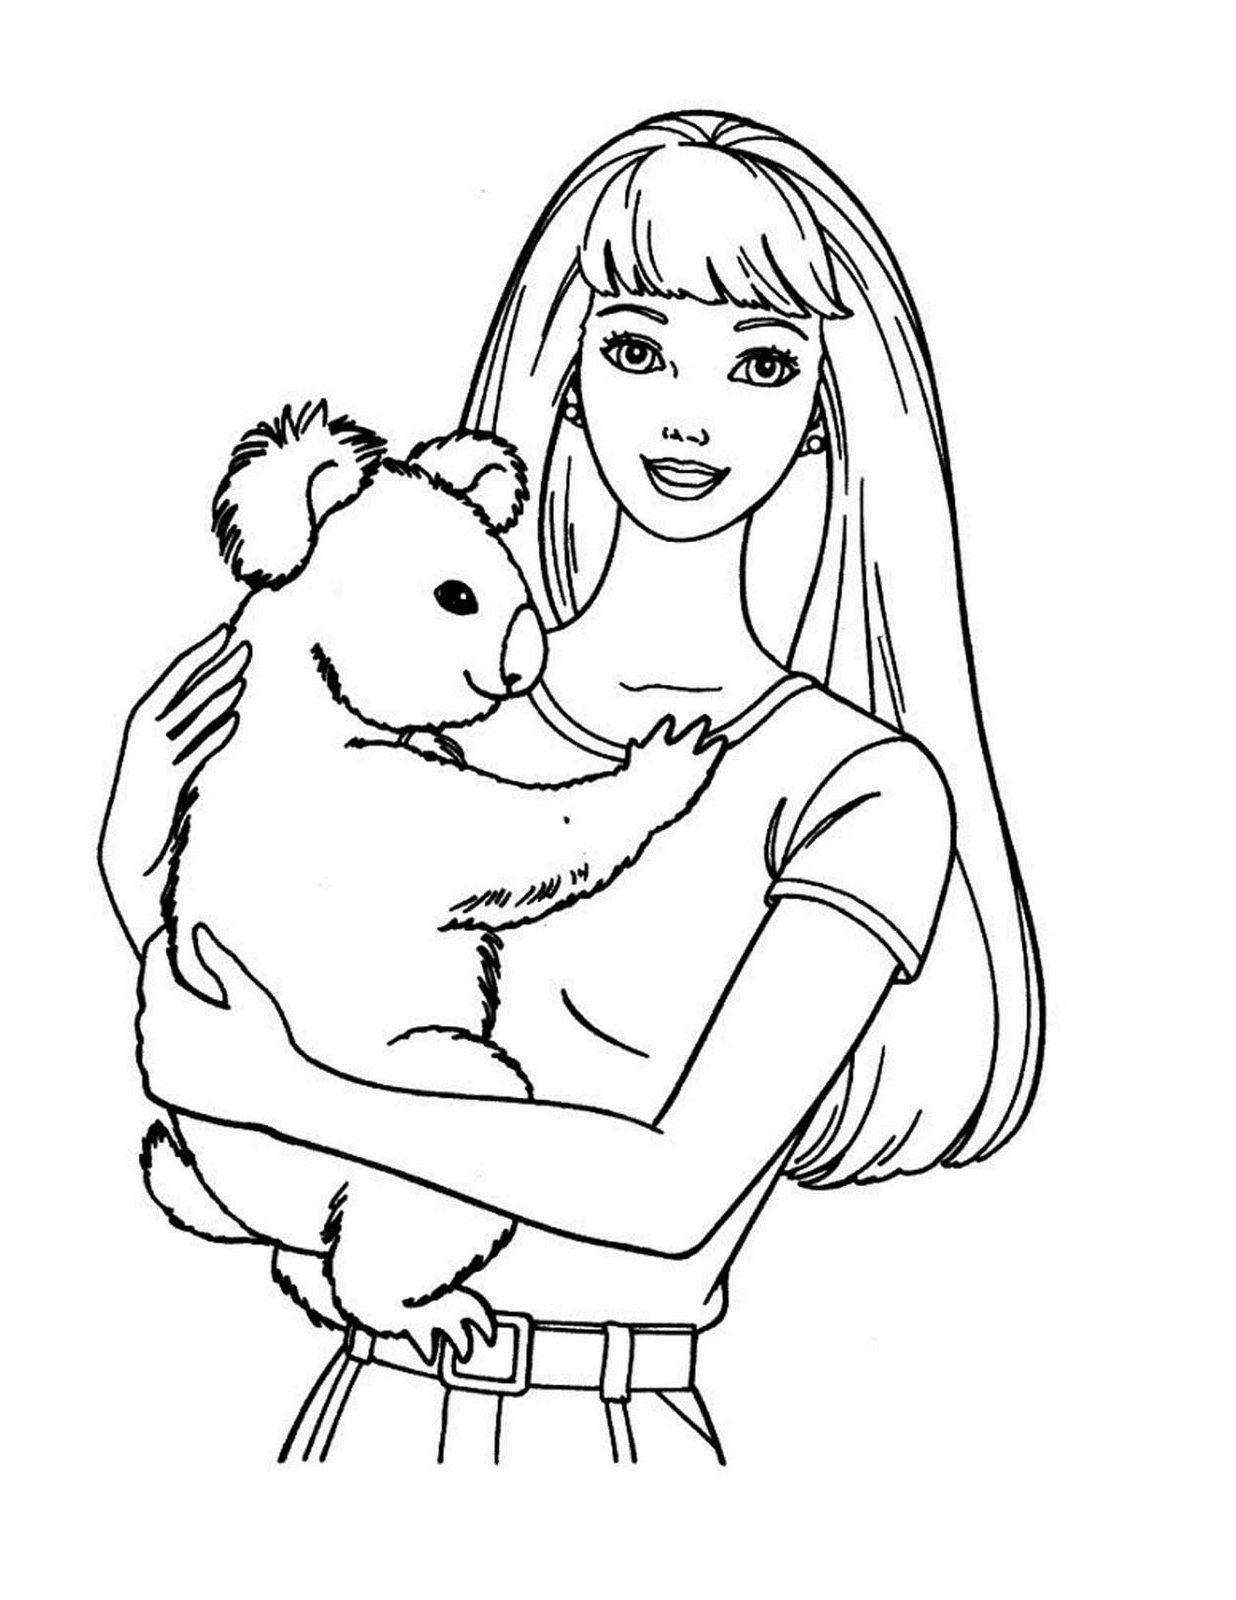 1236x1600 Disney Coloring Pages Barbie Preschool For Humorous Draw Photo